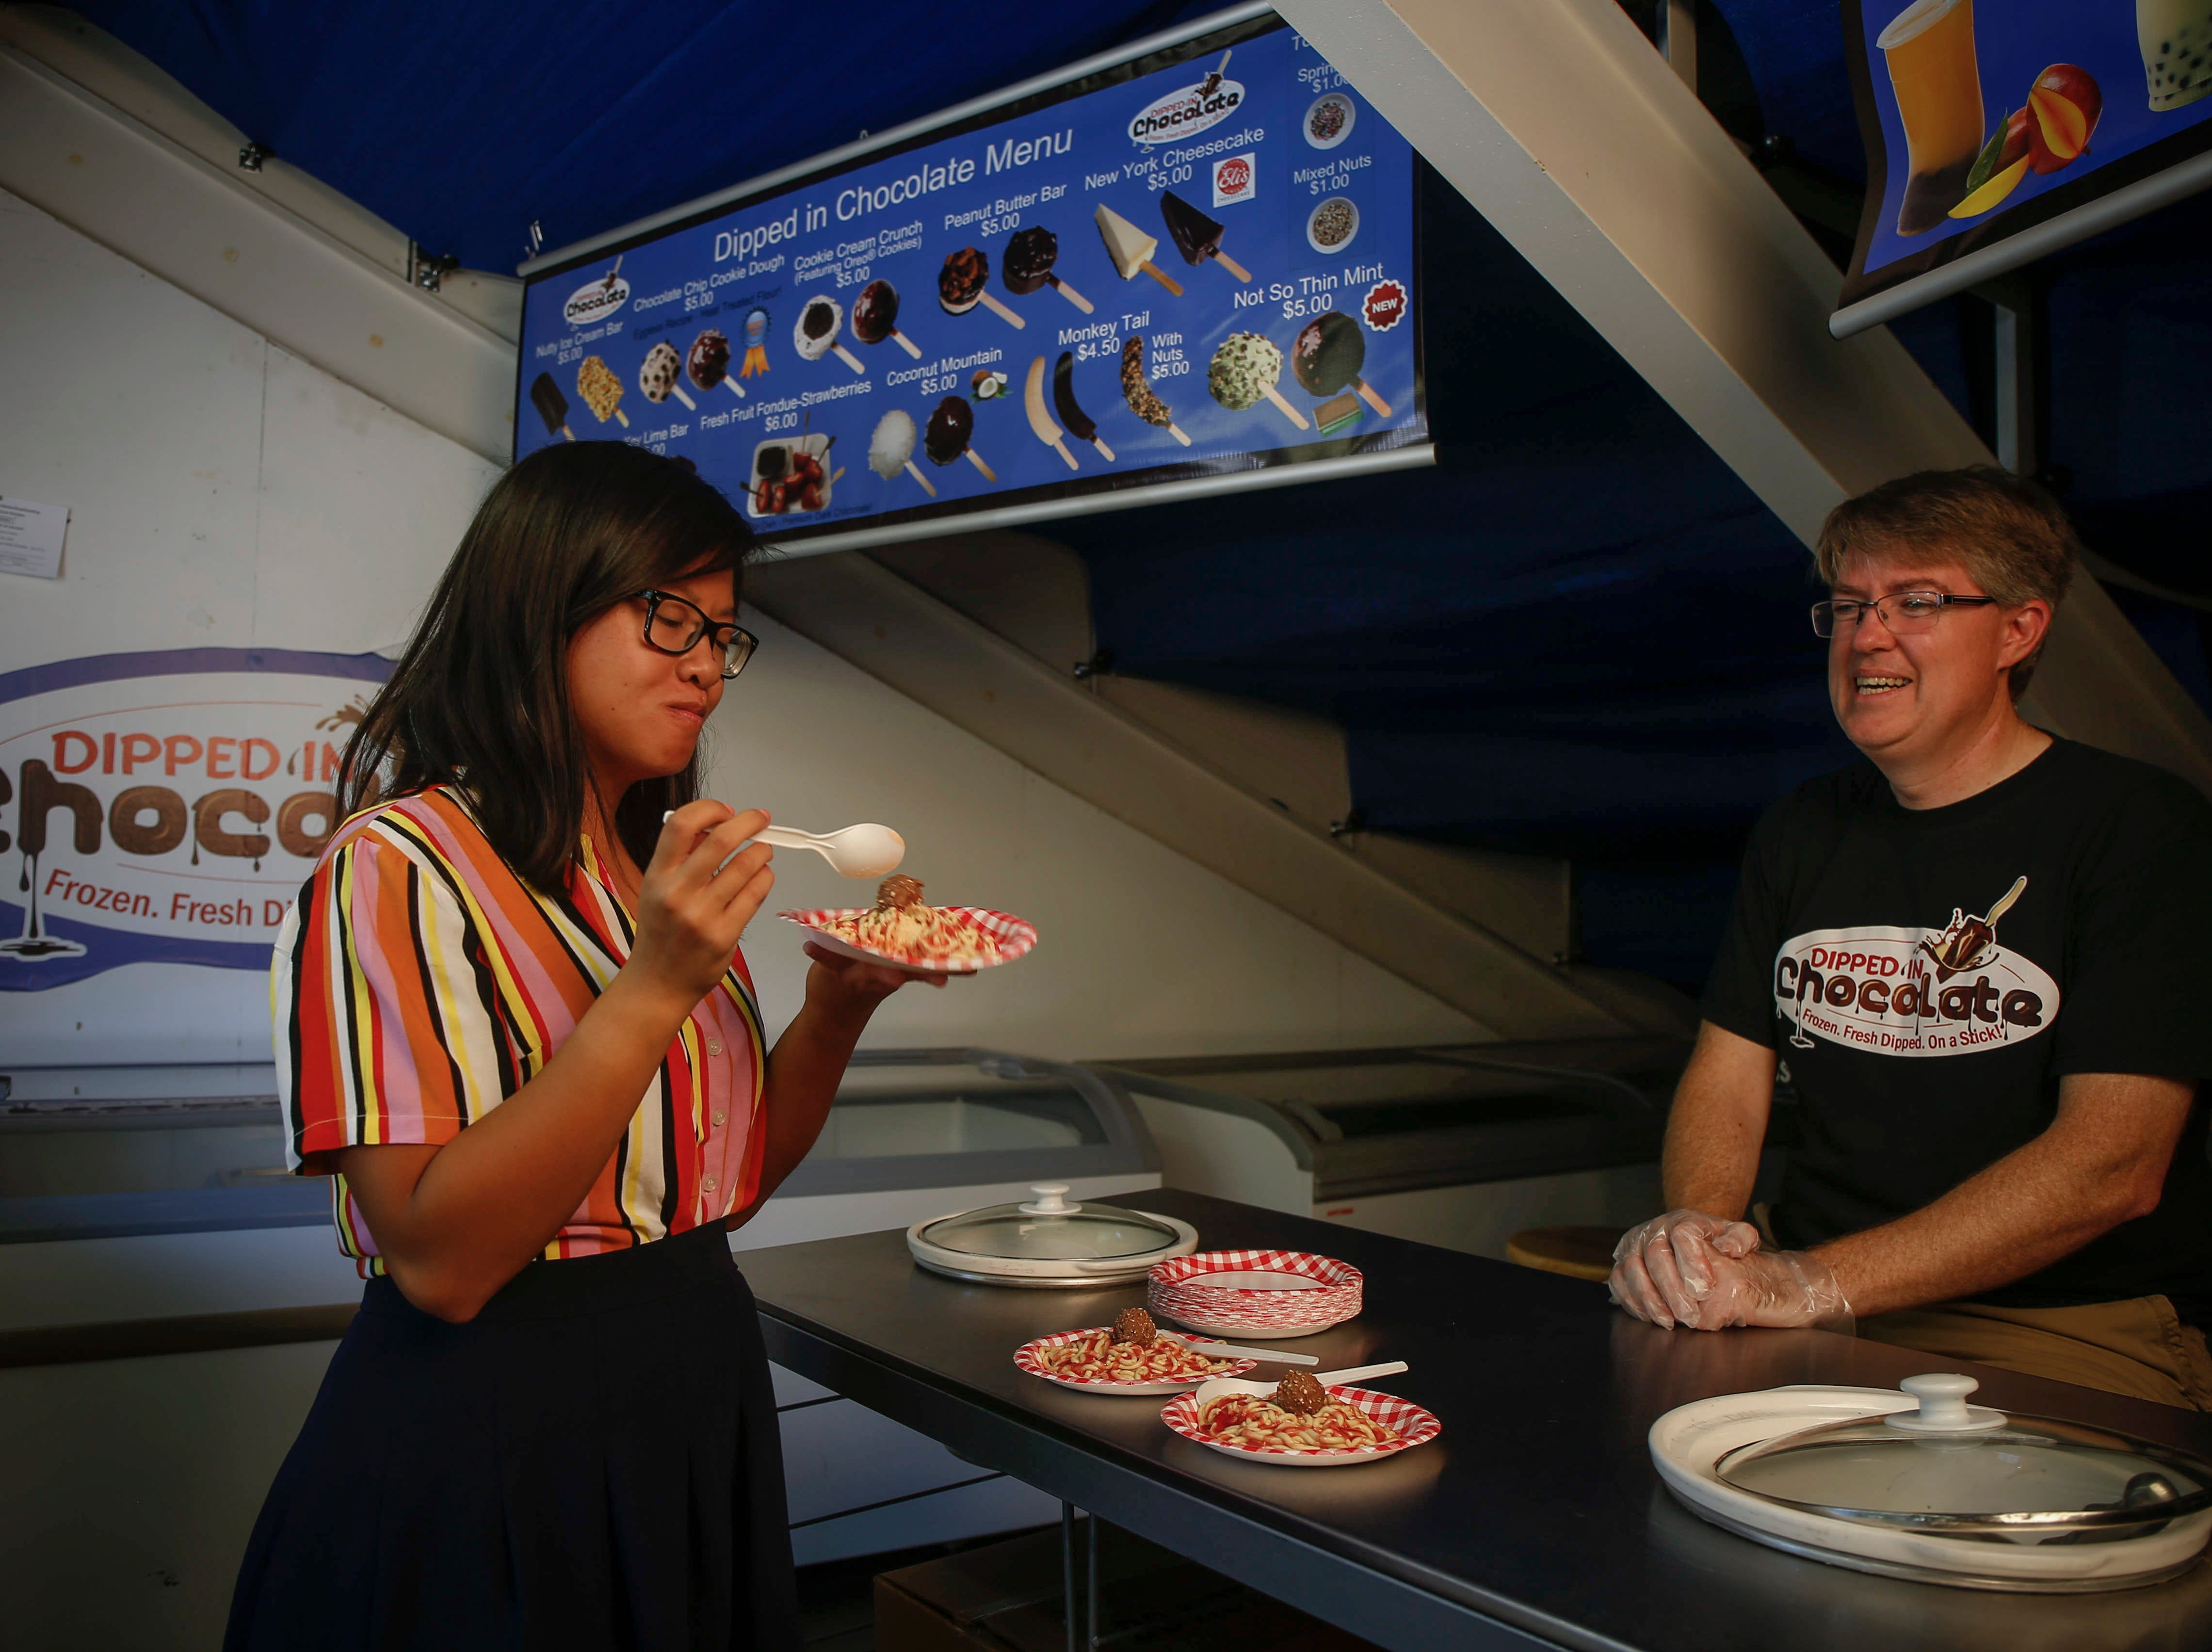 Des Moines Register reporter Linh Ta tries a bite of Cookie Dough Spaghetti which was co-created by Dennis Mitchell, right, at the Dipped In Chocolate stand at the Pavilion on the Iowa State Fair grounds.